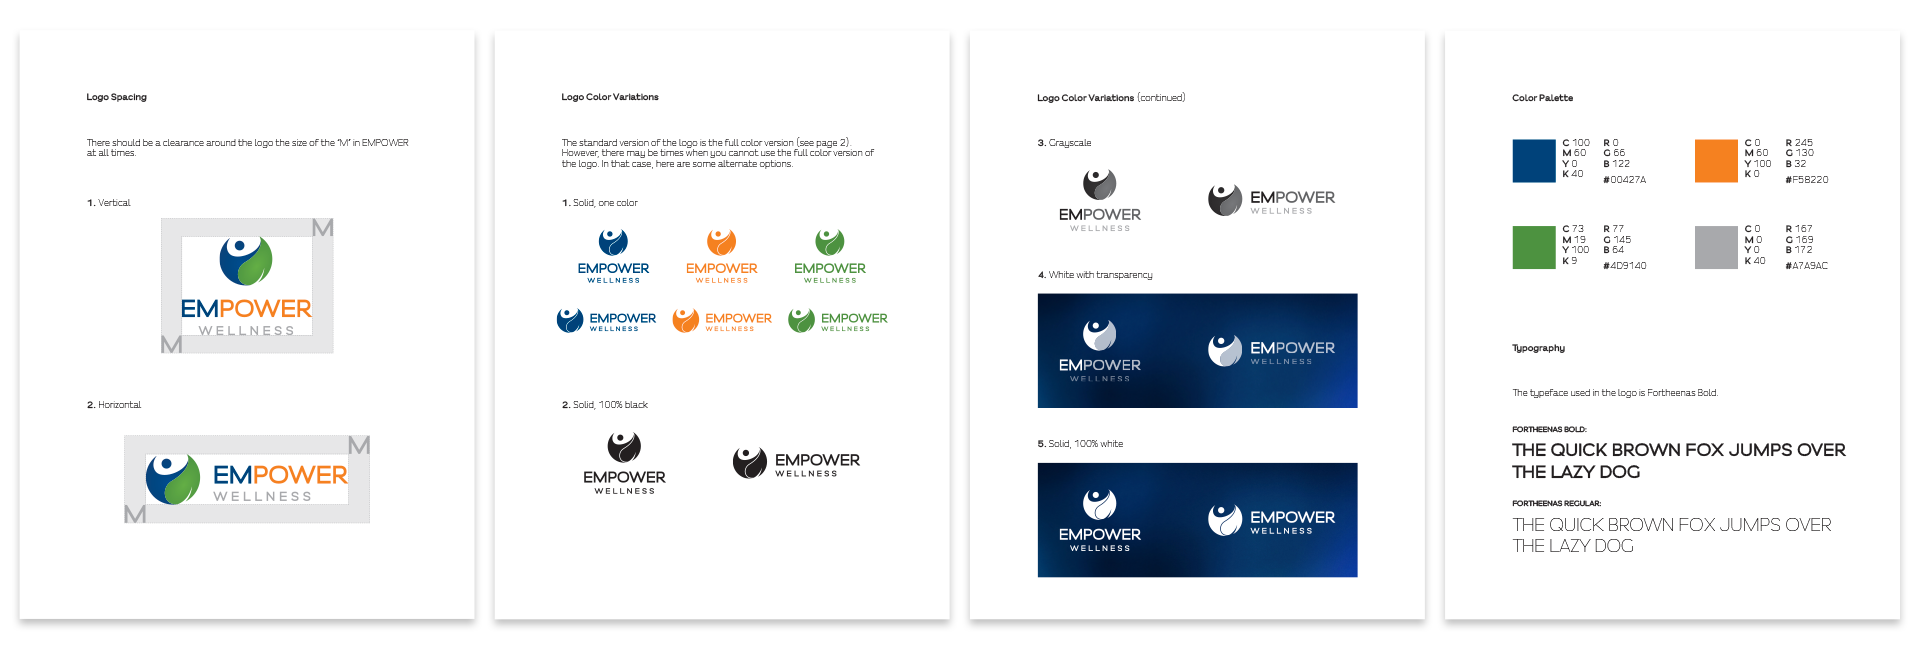 Empower Wellness logo guidelines pages